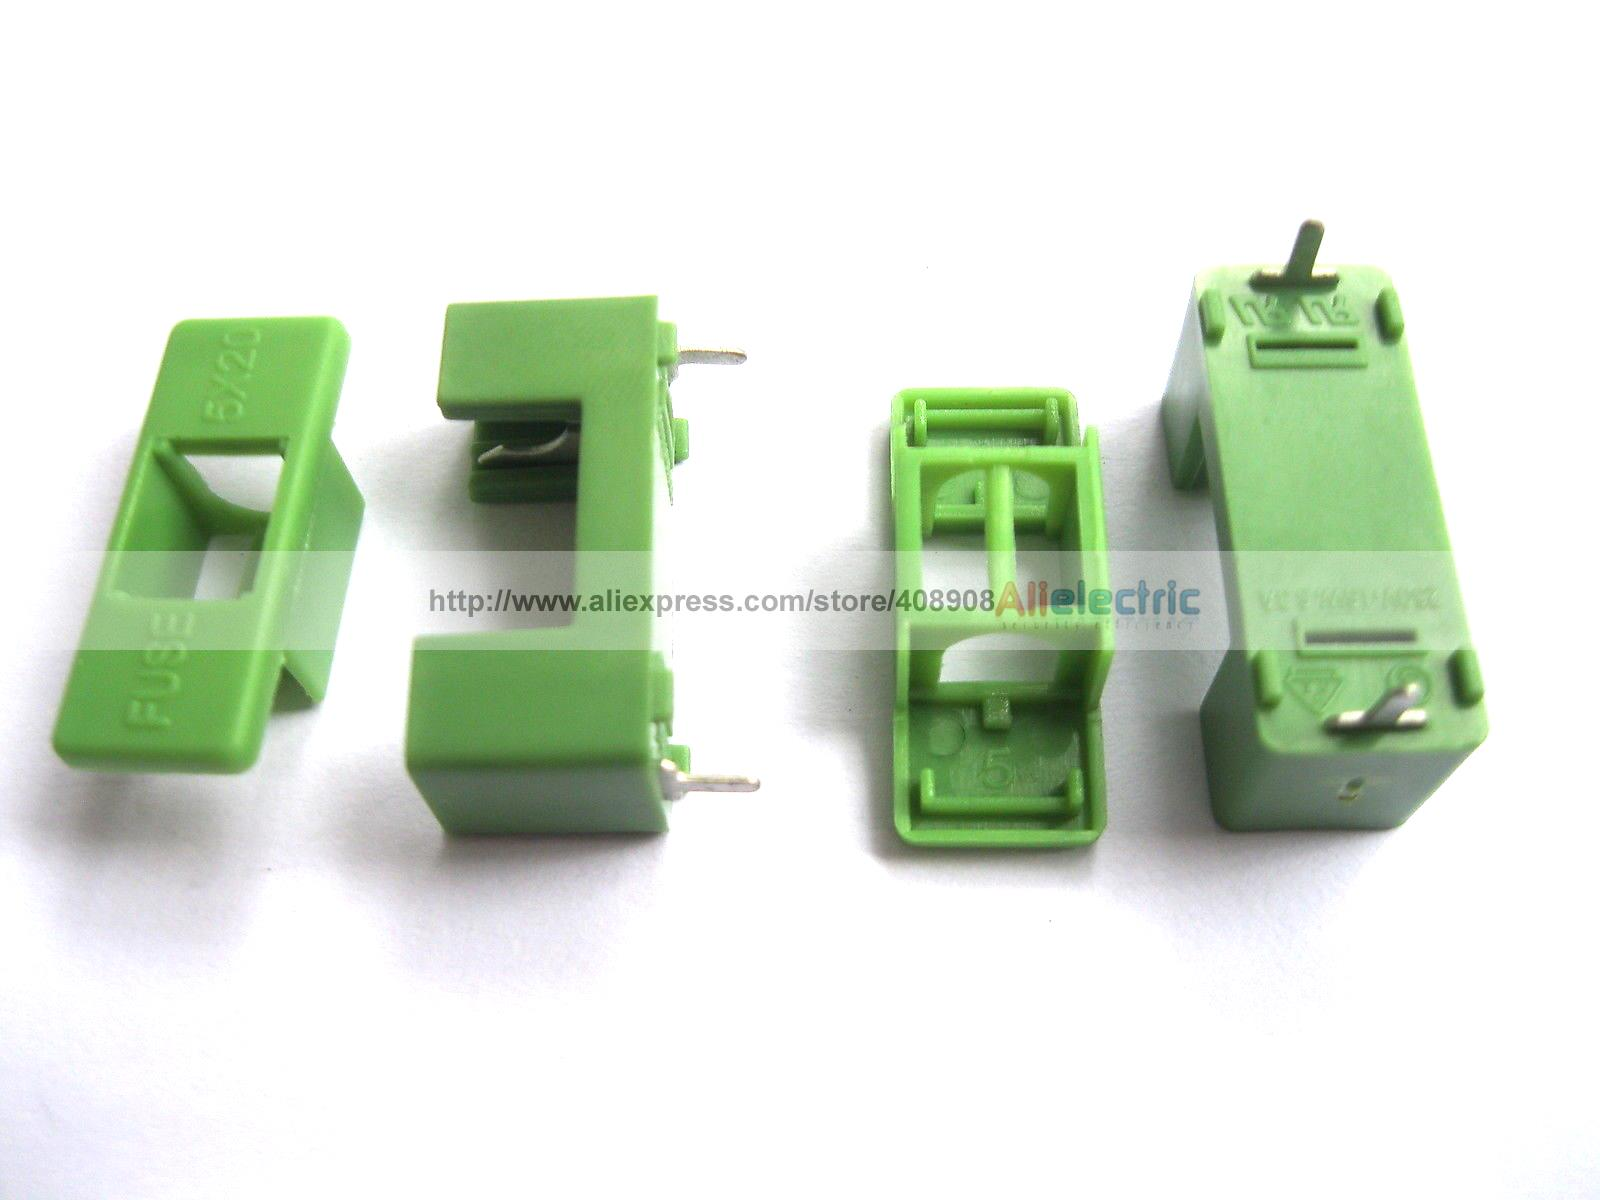 100 Pcs PTF 7 DIP Fuse Holder 6 3A 250V Used for 5x20 Green Color шина goodyear wrangler hp all weather 265 65 r17 112h